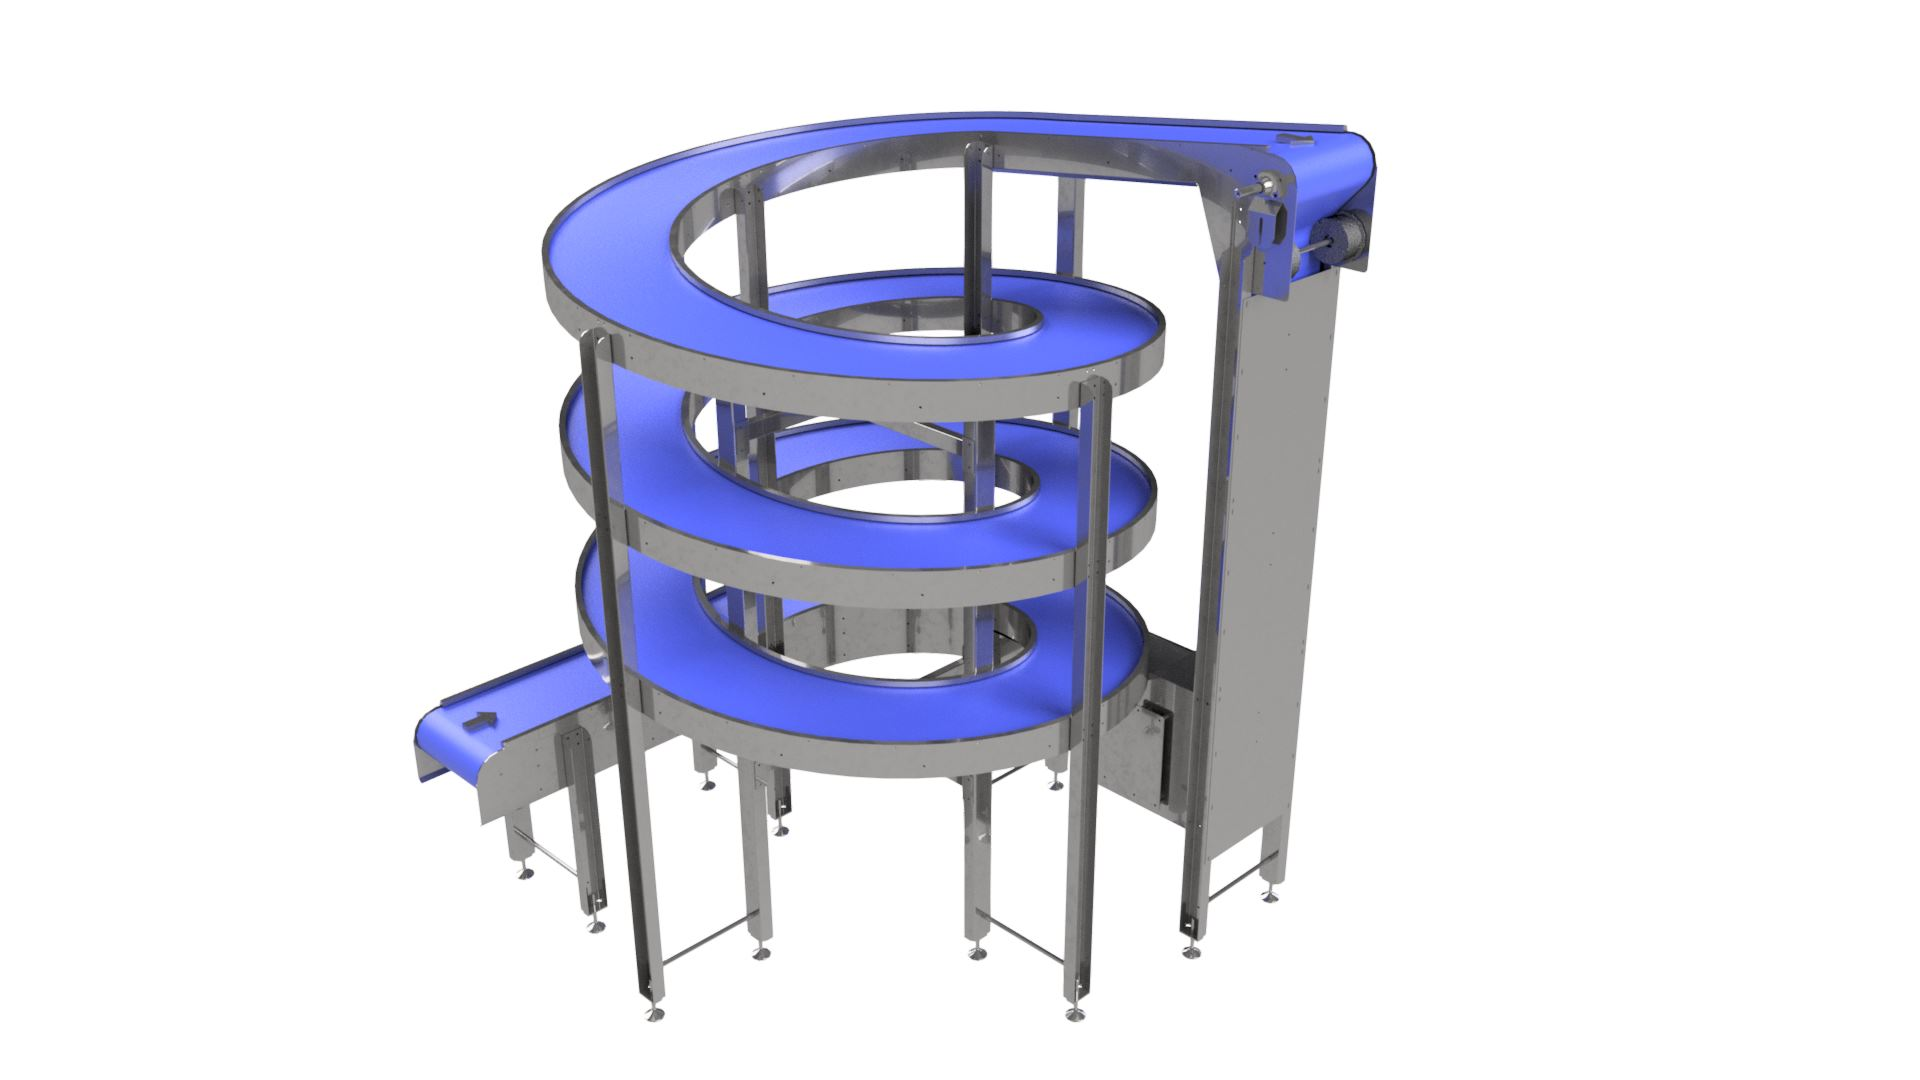 3D model of Spiral Elevators for use in Food Applications